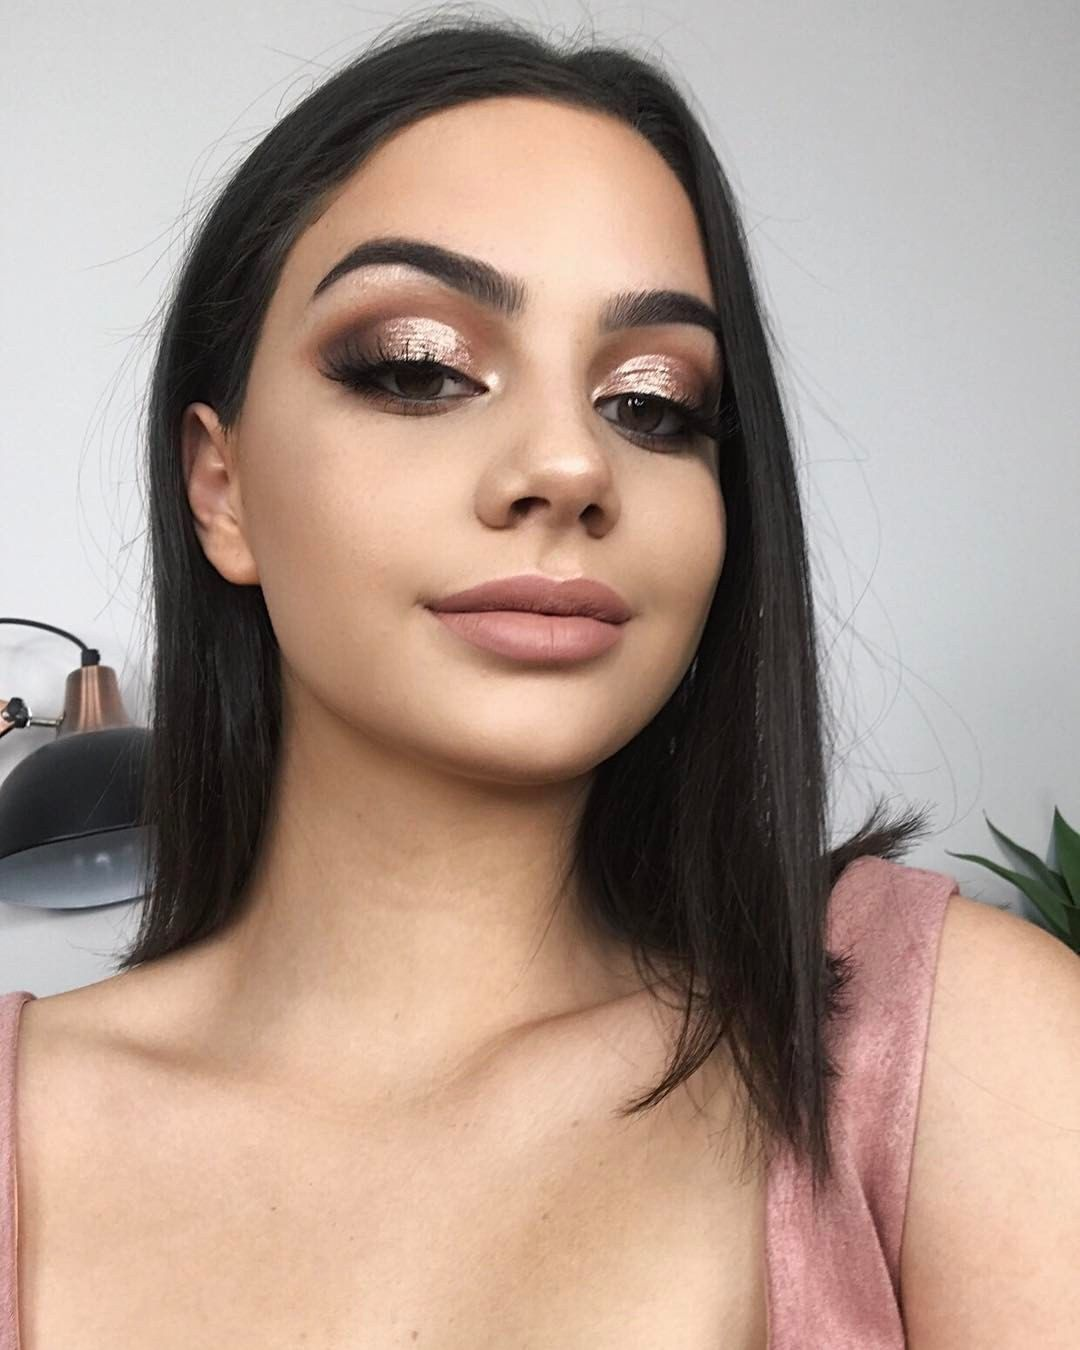 190 Simple Natural Makeup Ideas Easy To Try Page 31 Of 50 In 2020 Rose Gold Eye Makeup Birthday Makeup Looks Ball Makeup [ 1350 x 1080 Pixel ]